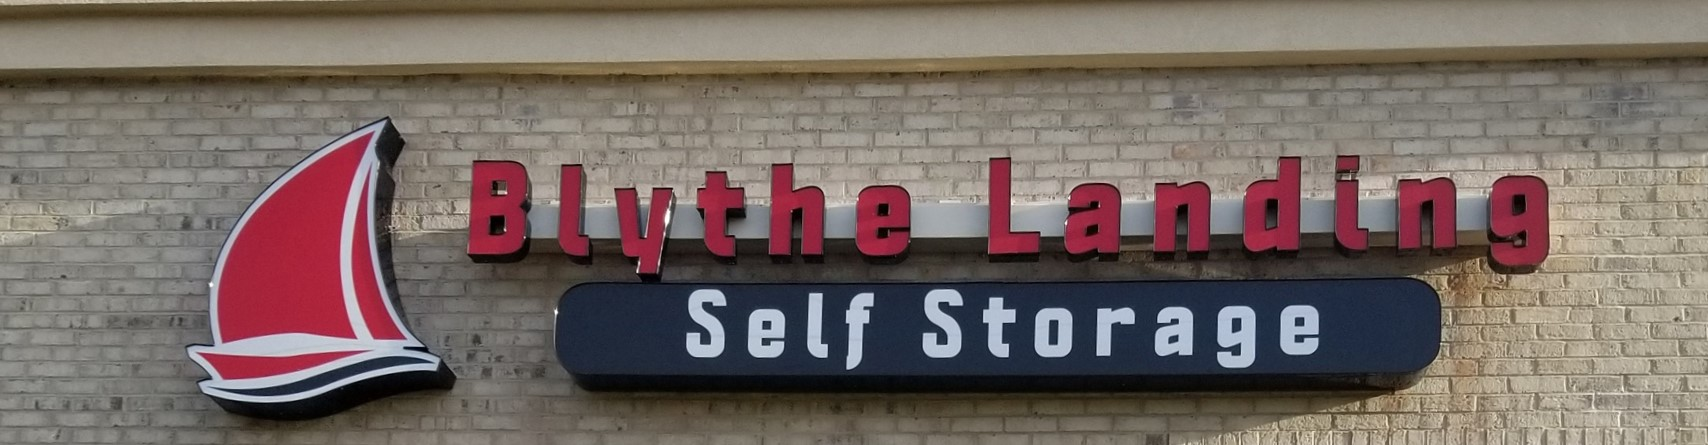 Blythe Landing Self Storage in Huntersville NC